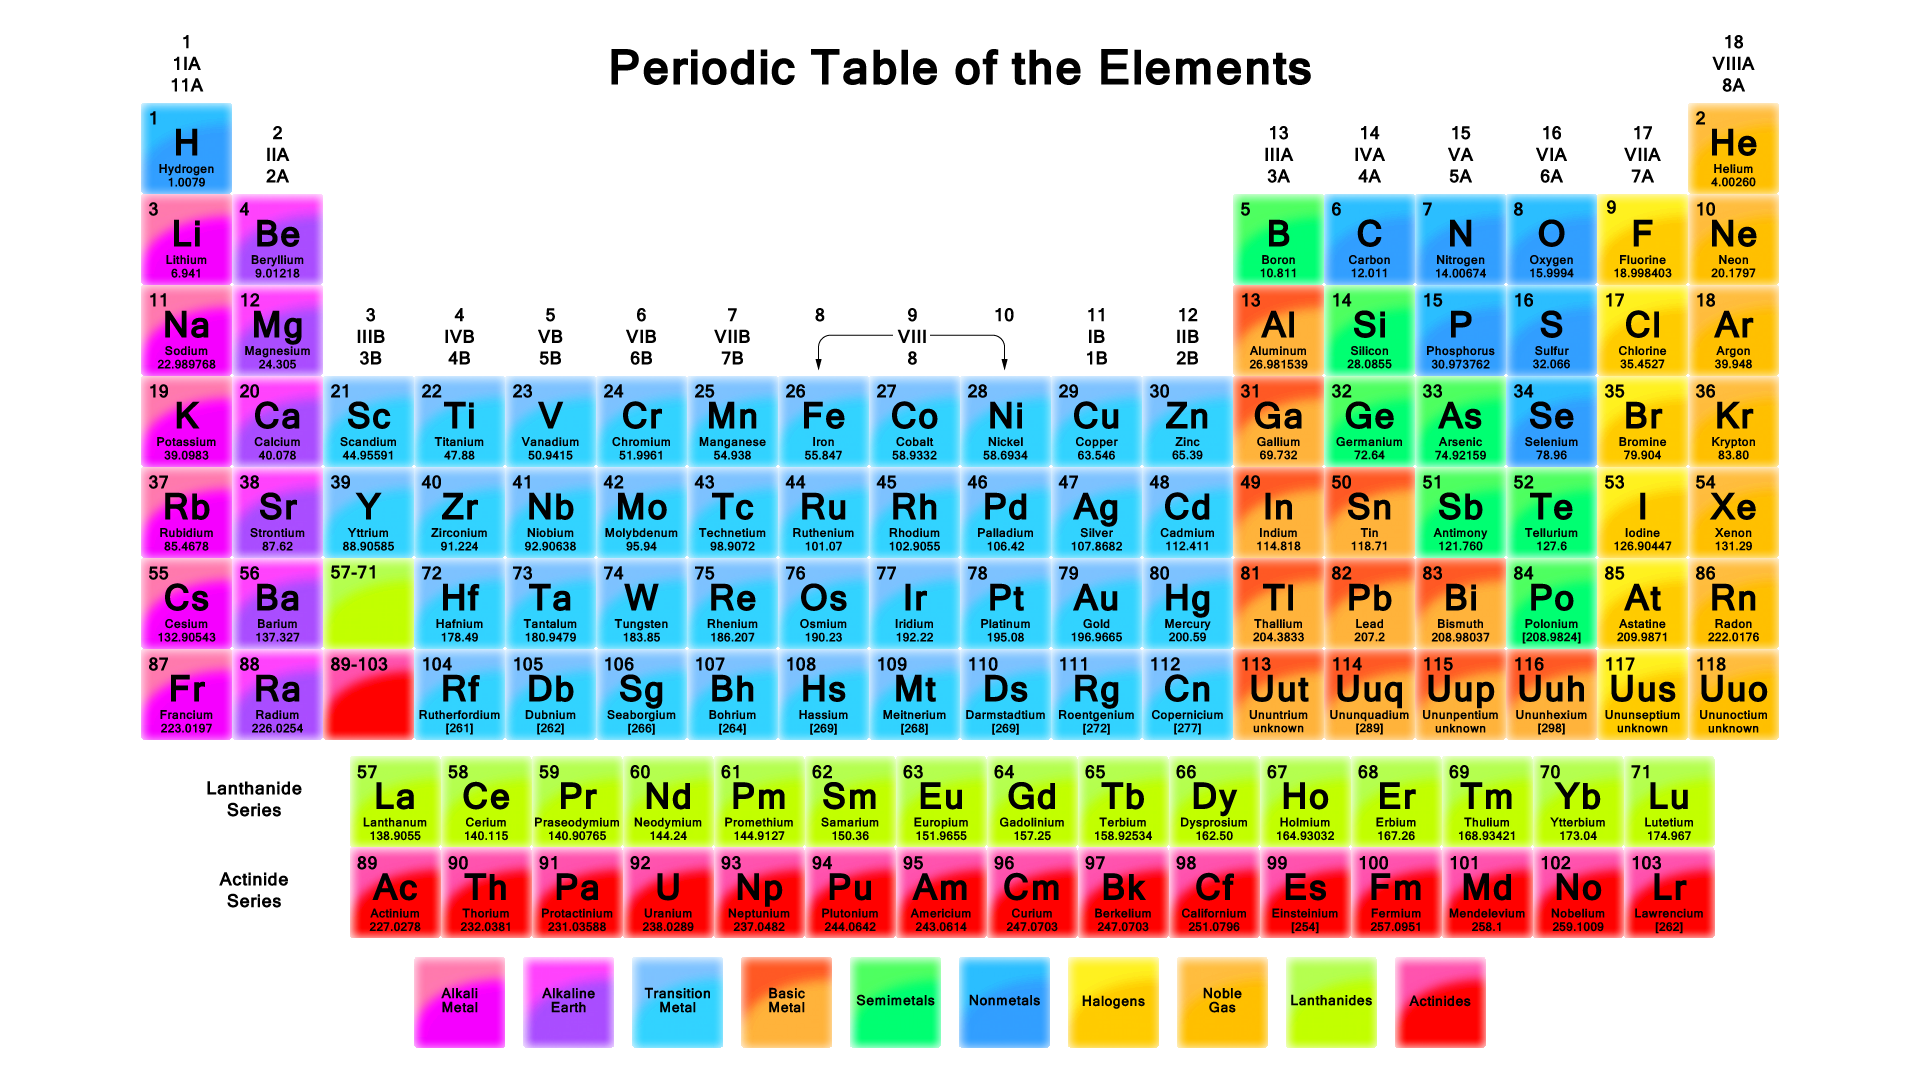 Periodic table images new calendar template site for 110 element in periodic table